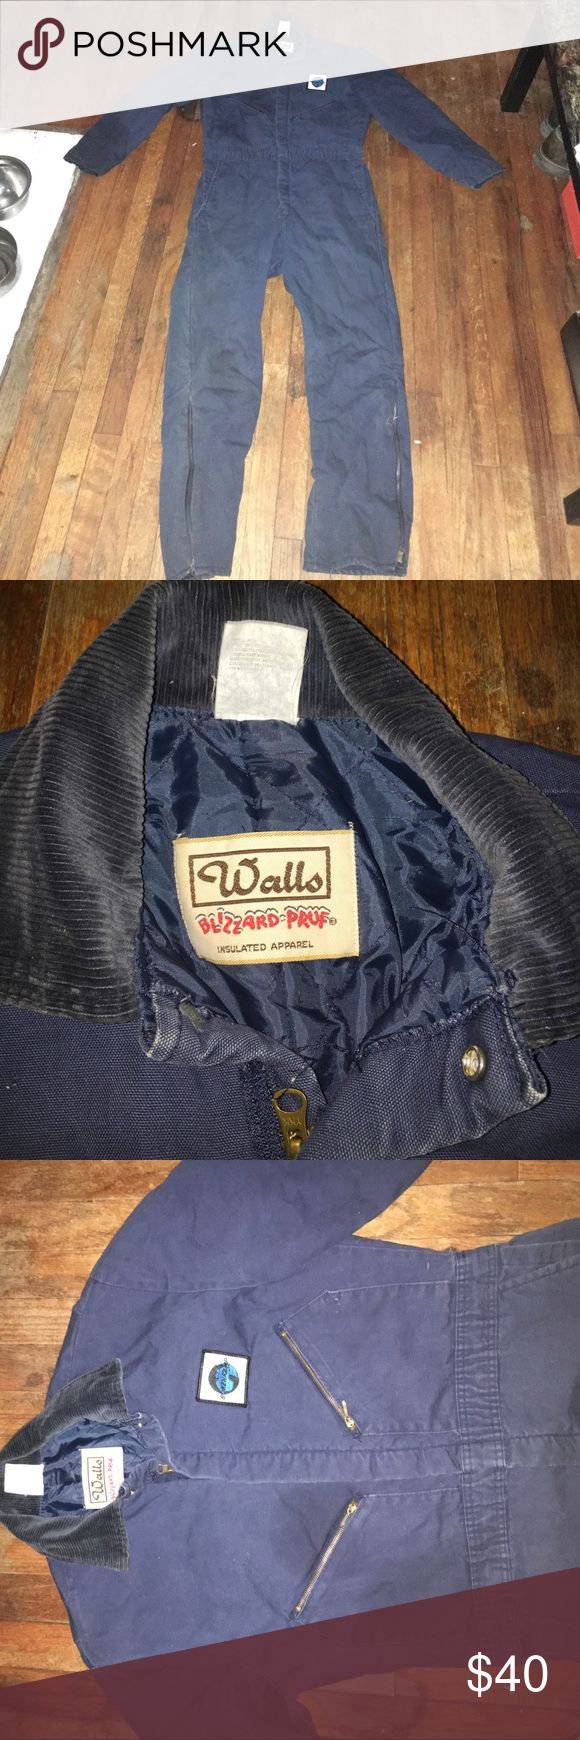 Walls blizzard pruf coveralls Walls blizzard pruf insulted navy coveralls. Slightly worn but still in great shape Walls Other